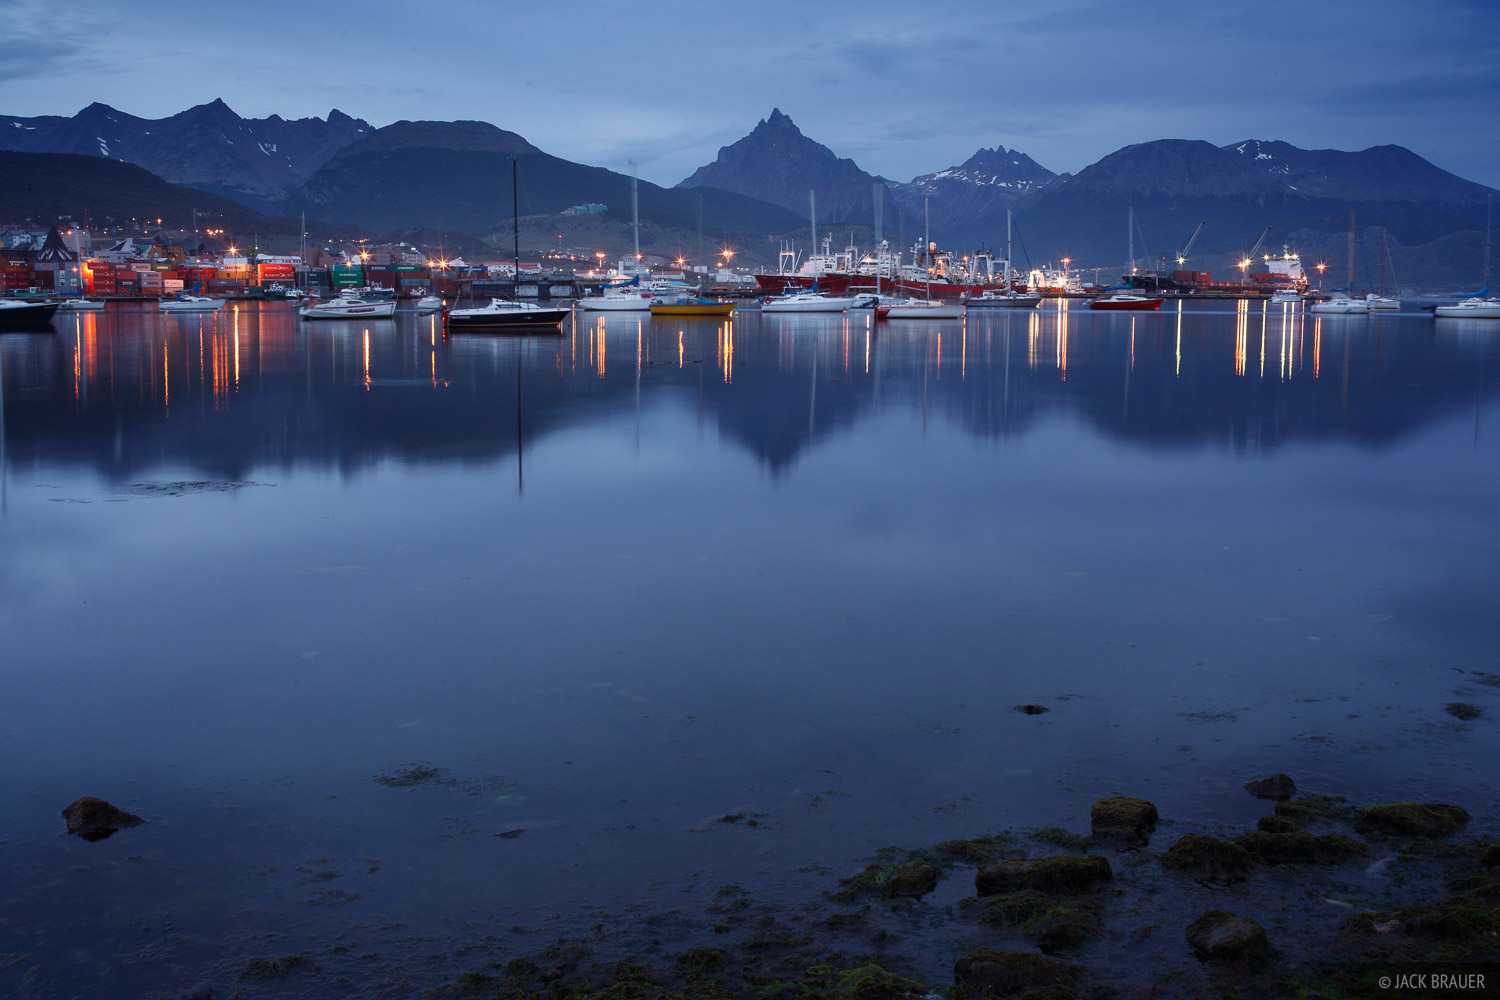 The city of Ushuaia, on the Beagle Channel at the southern tip of South America - January.